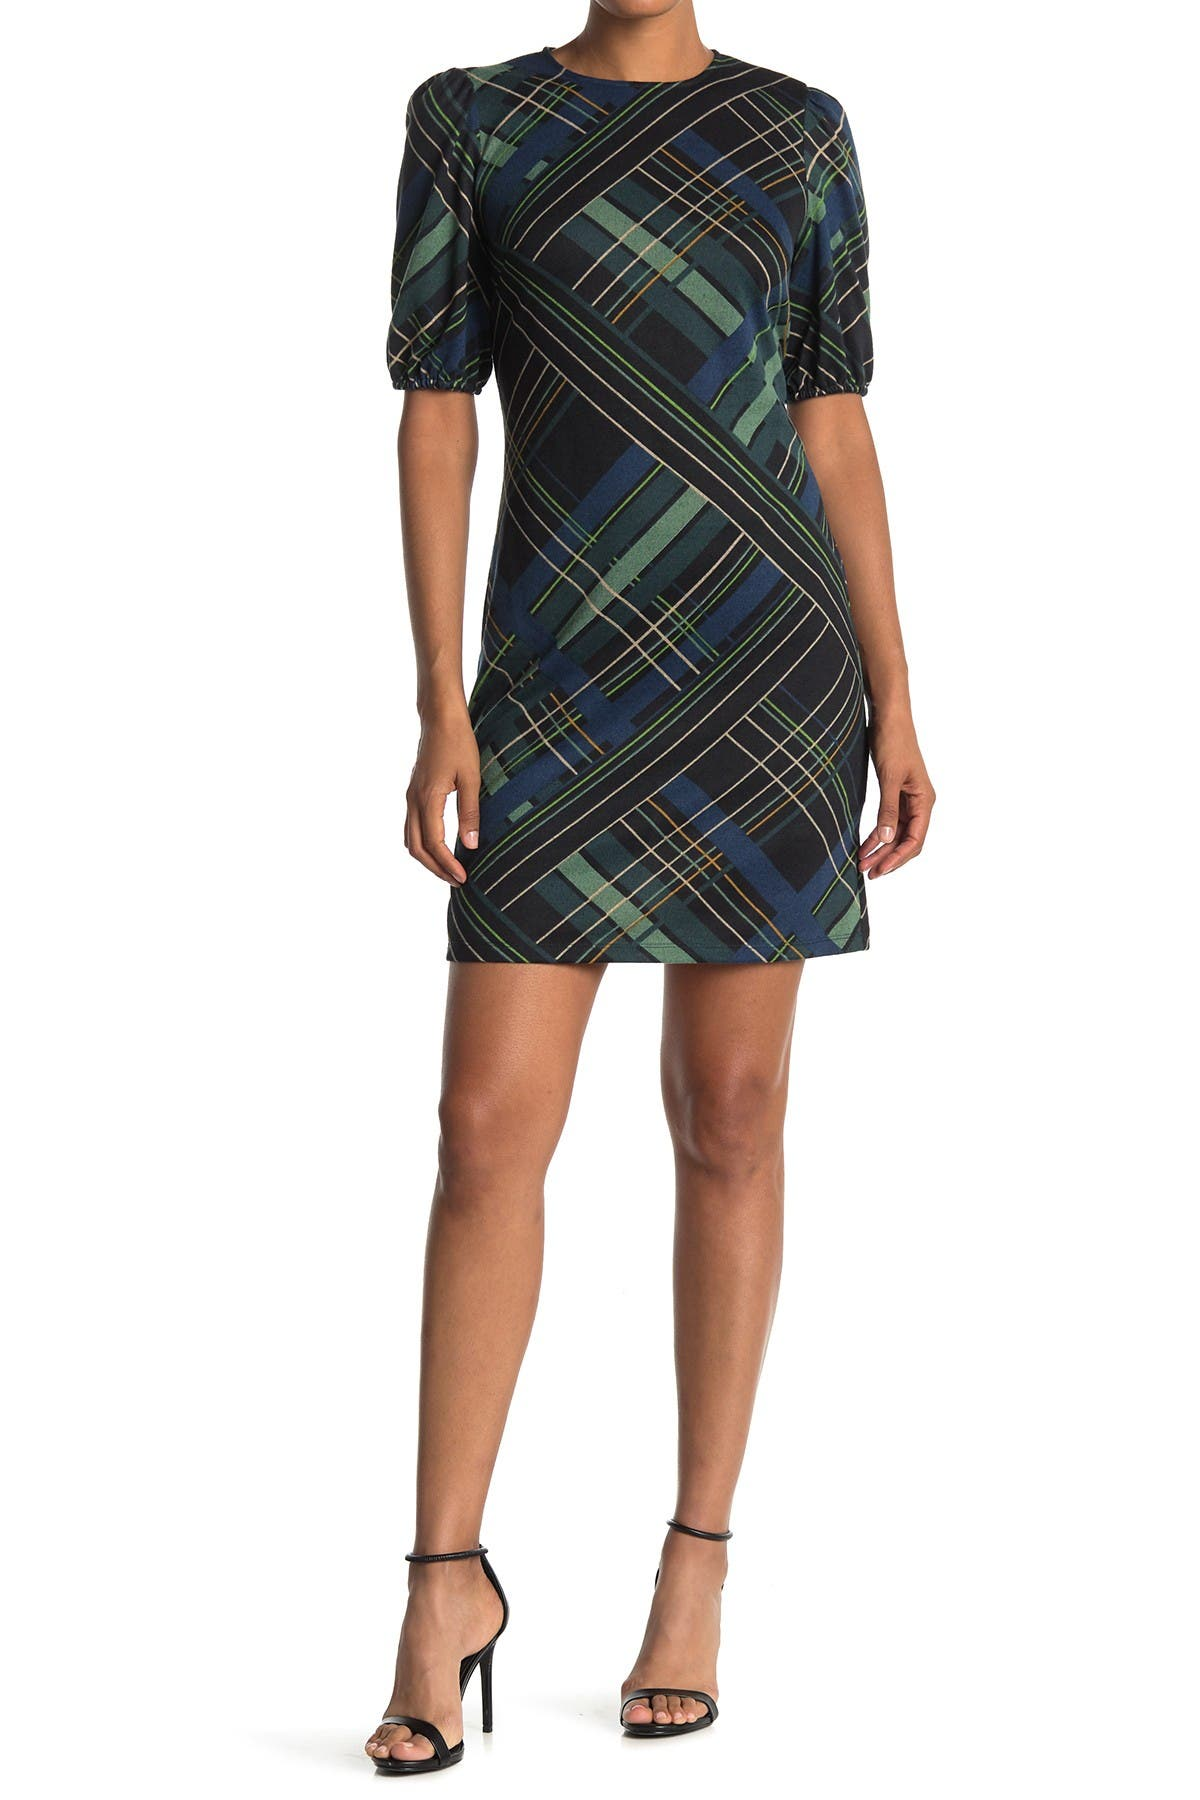 Image of London Times Plaid Print Novelty Sweater Dress